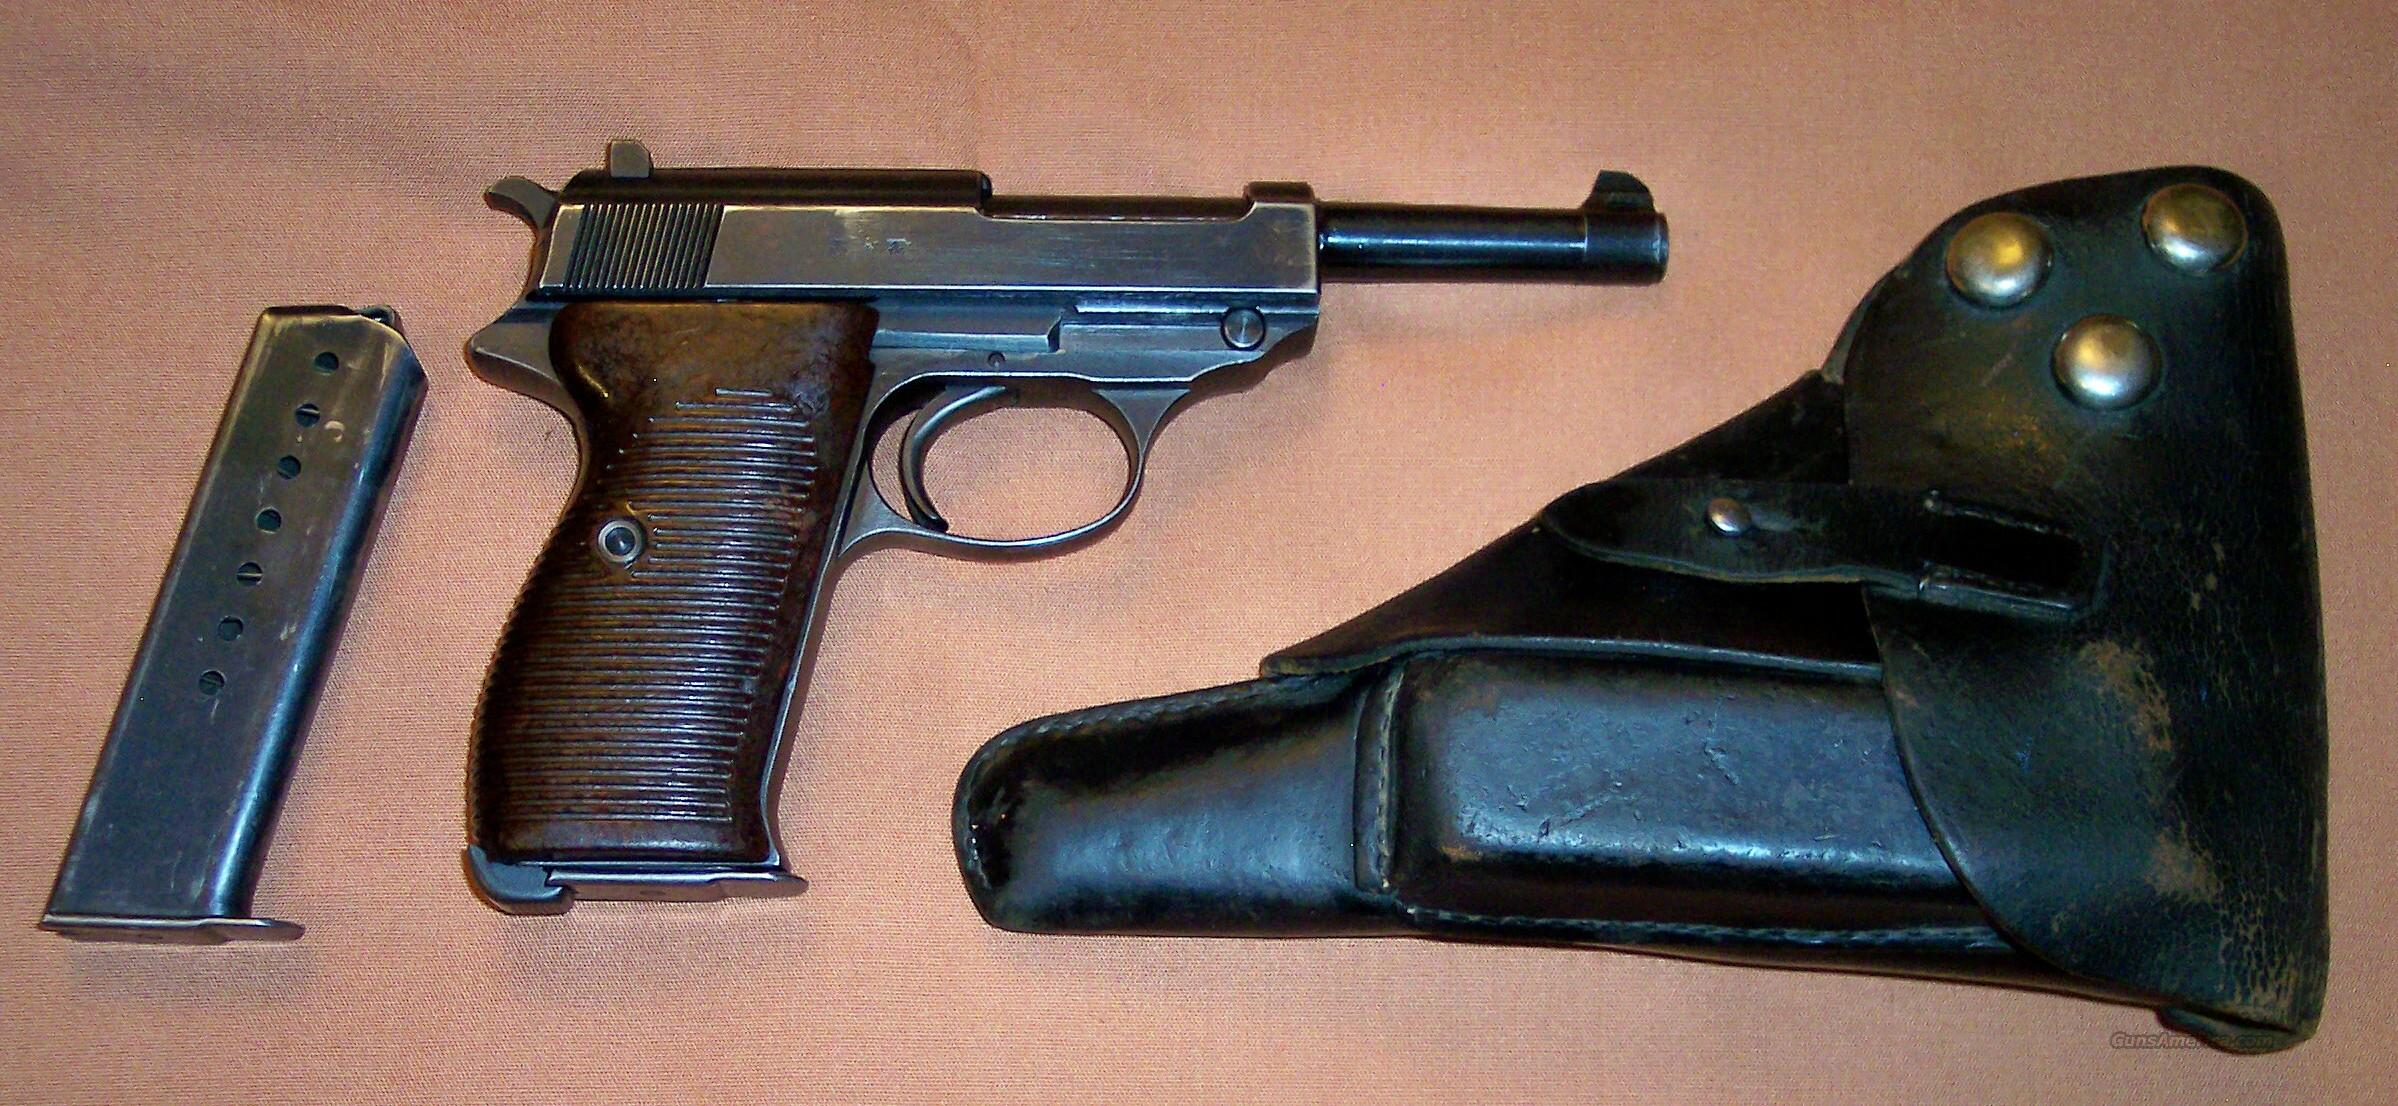 Walther P38 WWII (byf43) 9mm with Holster & Extra Mag.  Guns > Pistols > Walther Pistols > Pre-1945 > P-38